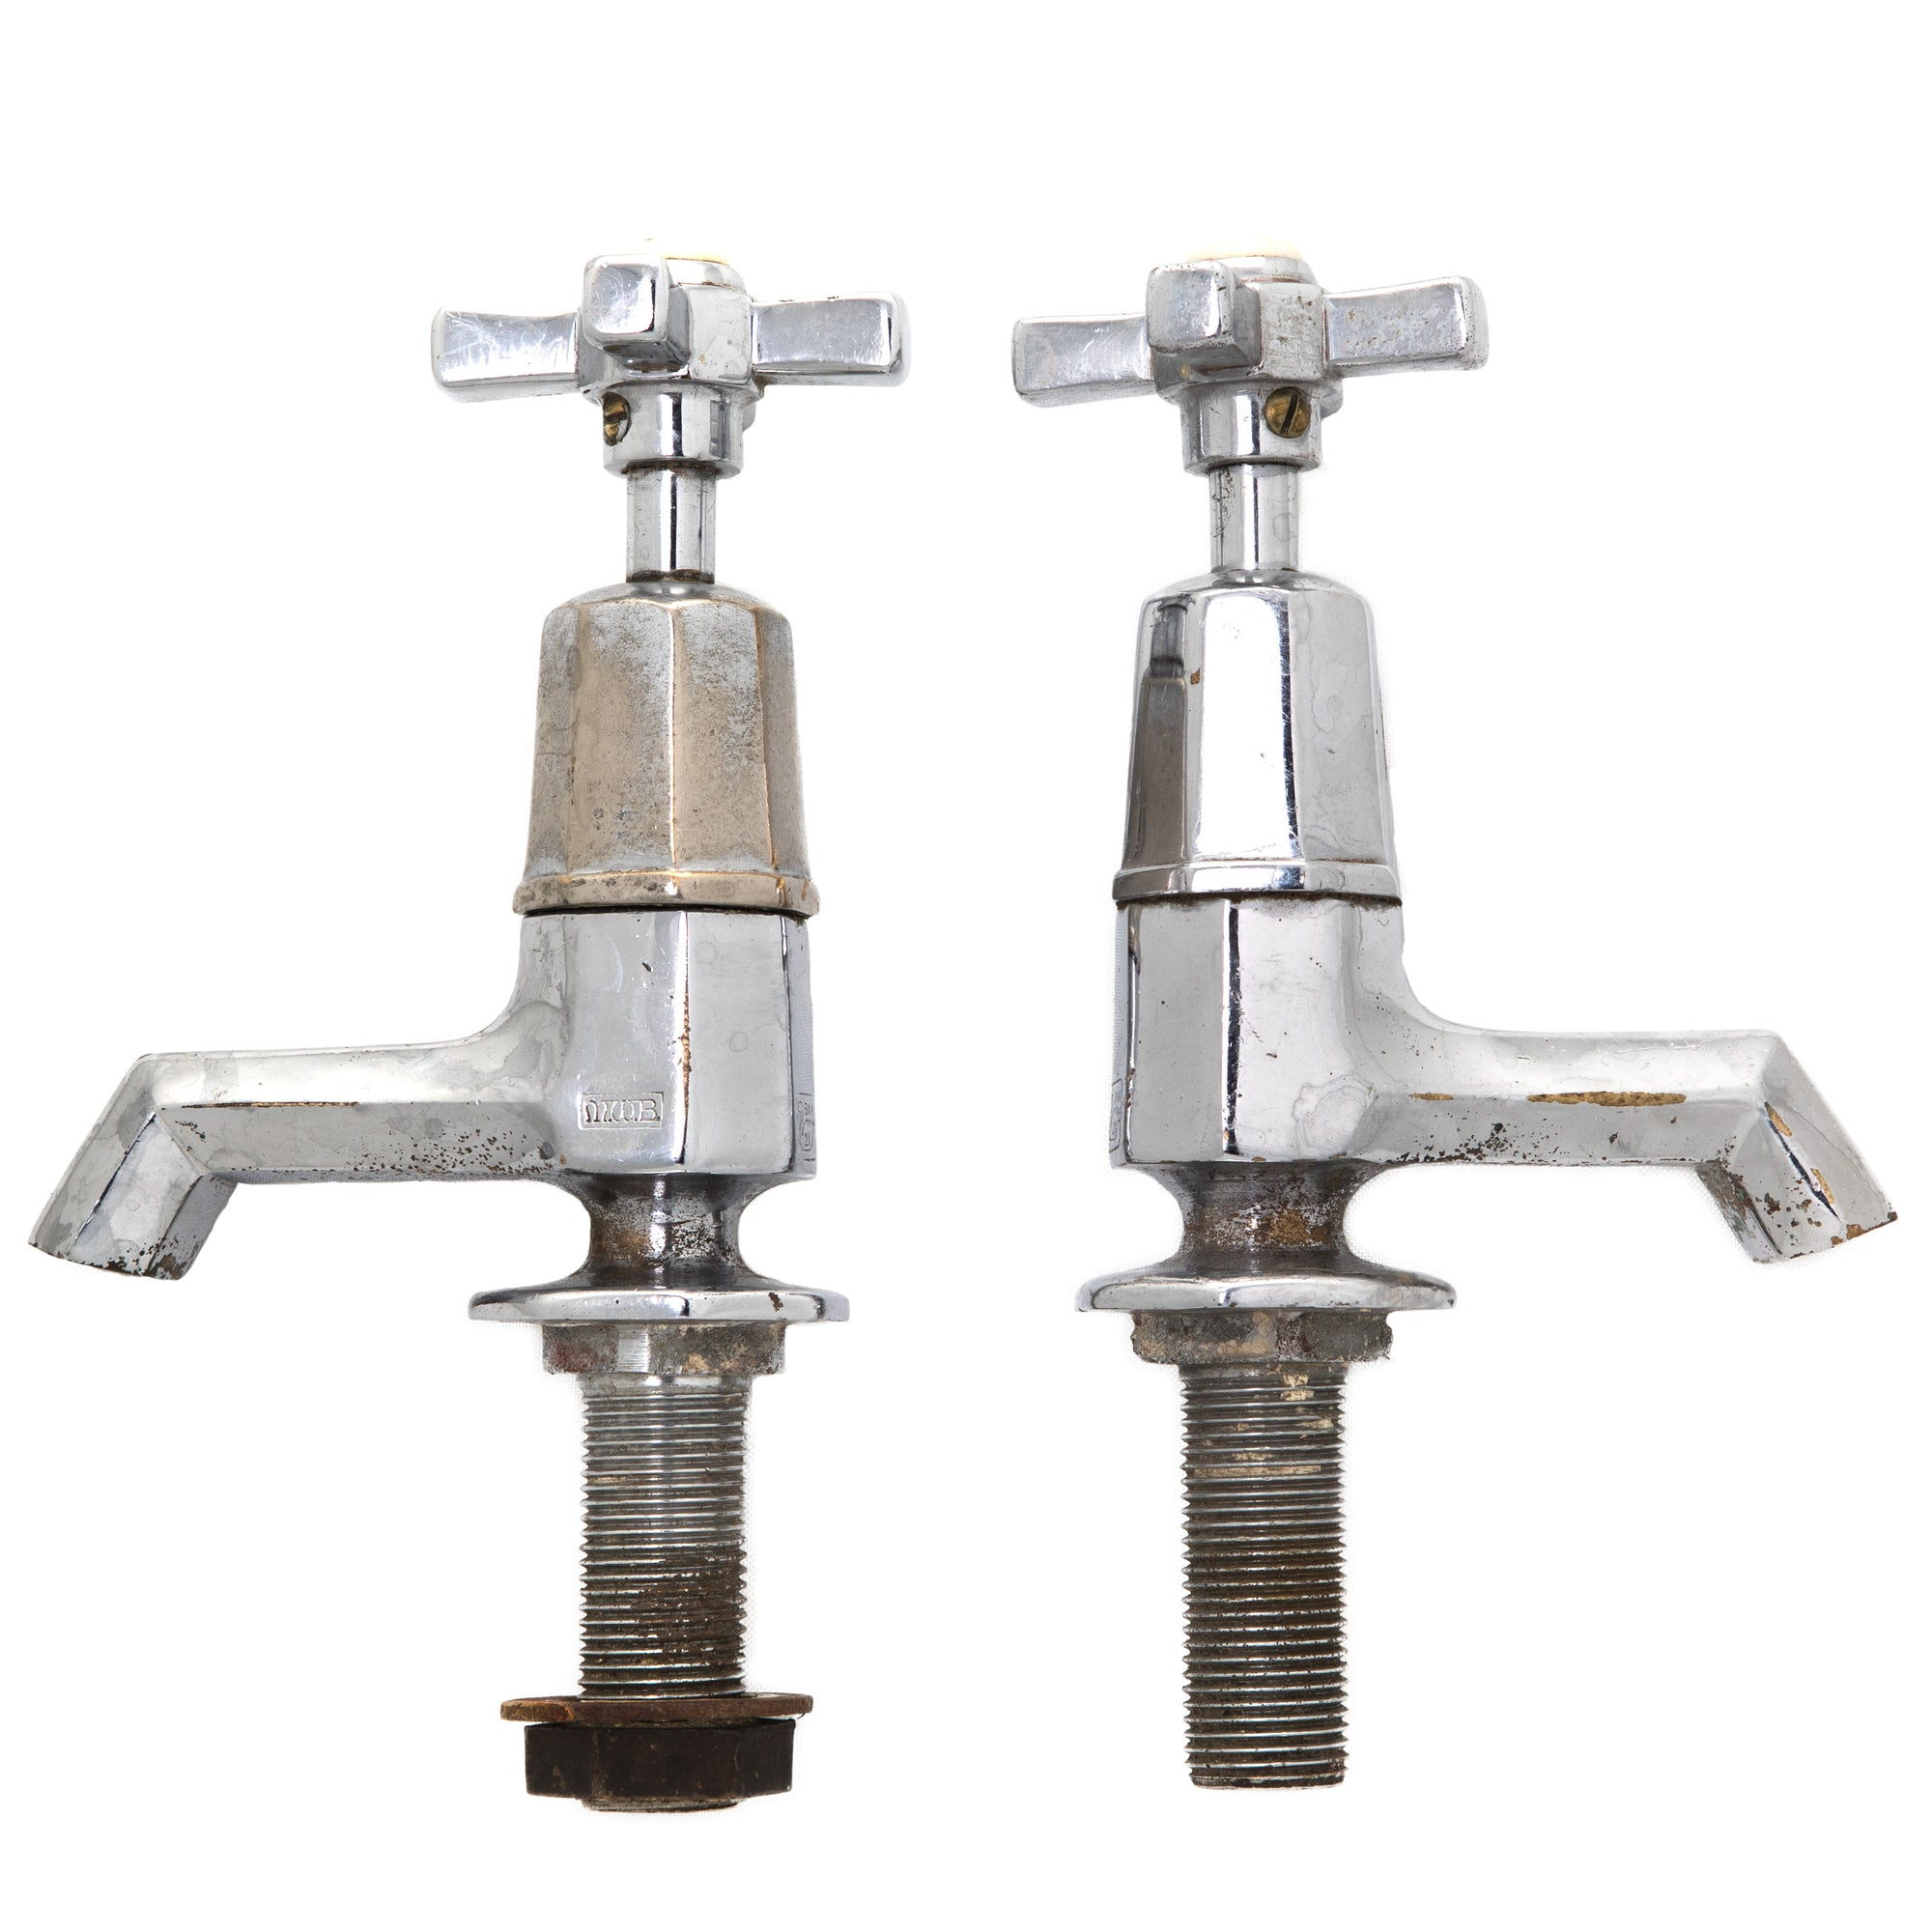 Pair of Art Deco Chrome Taps